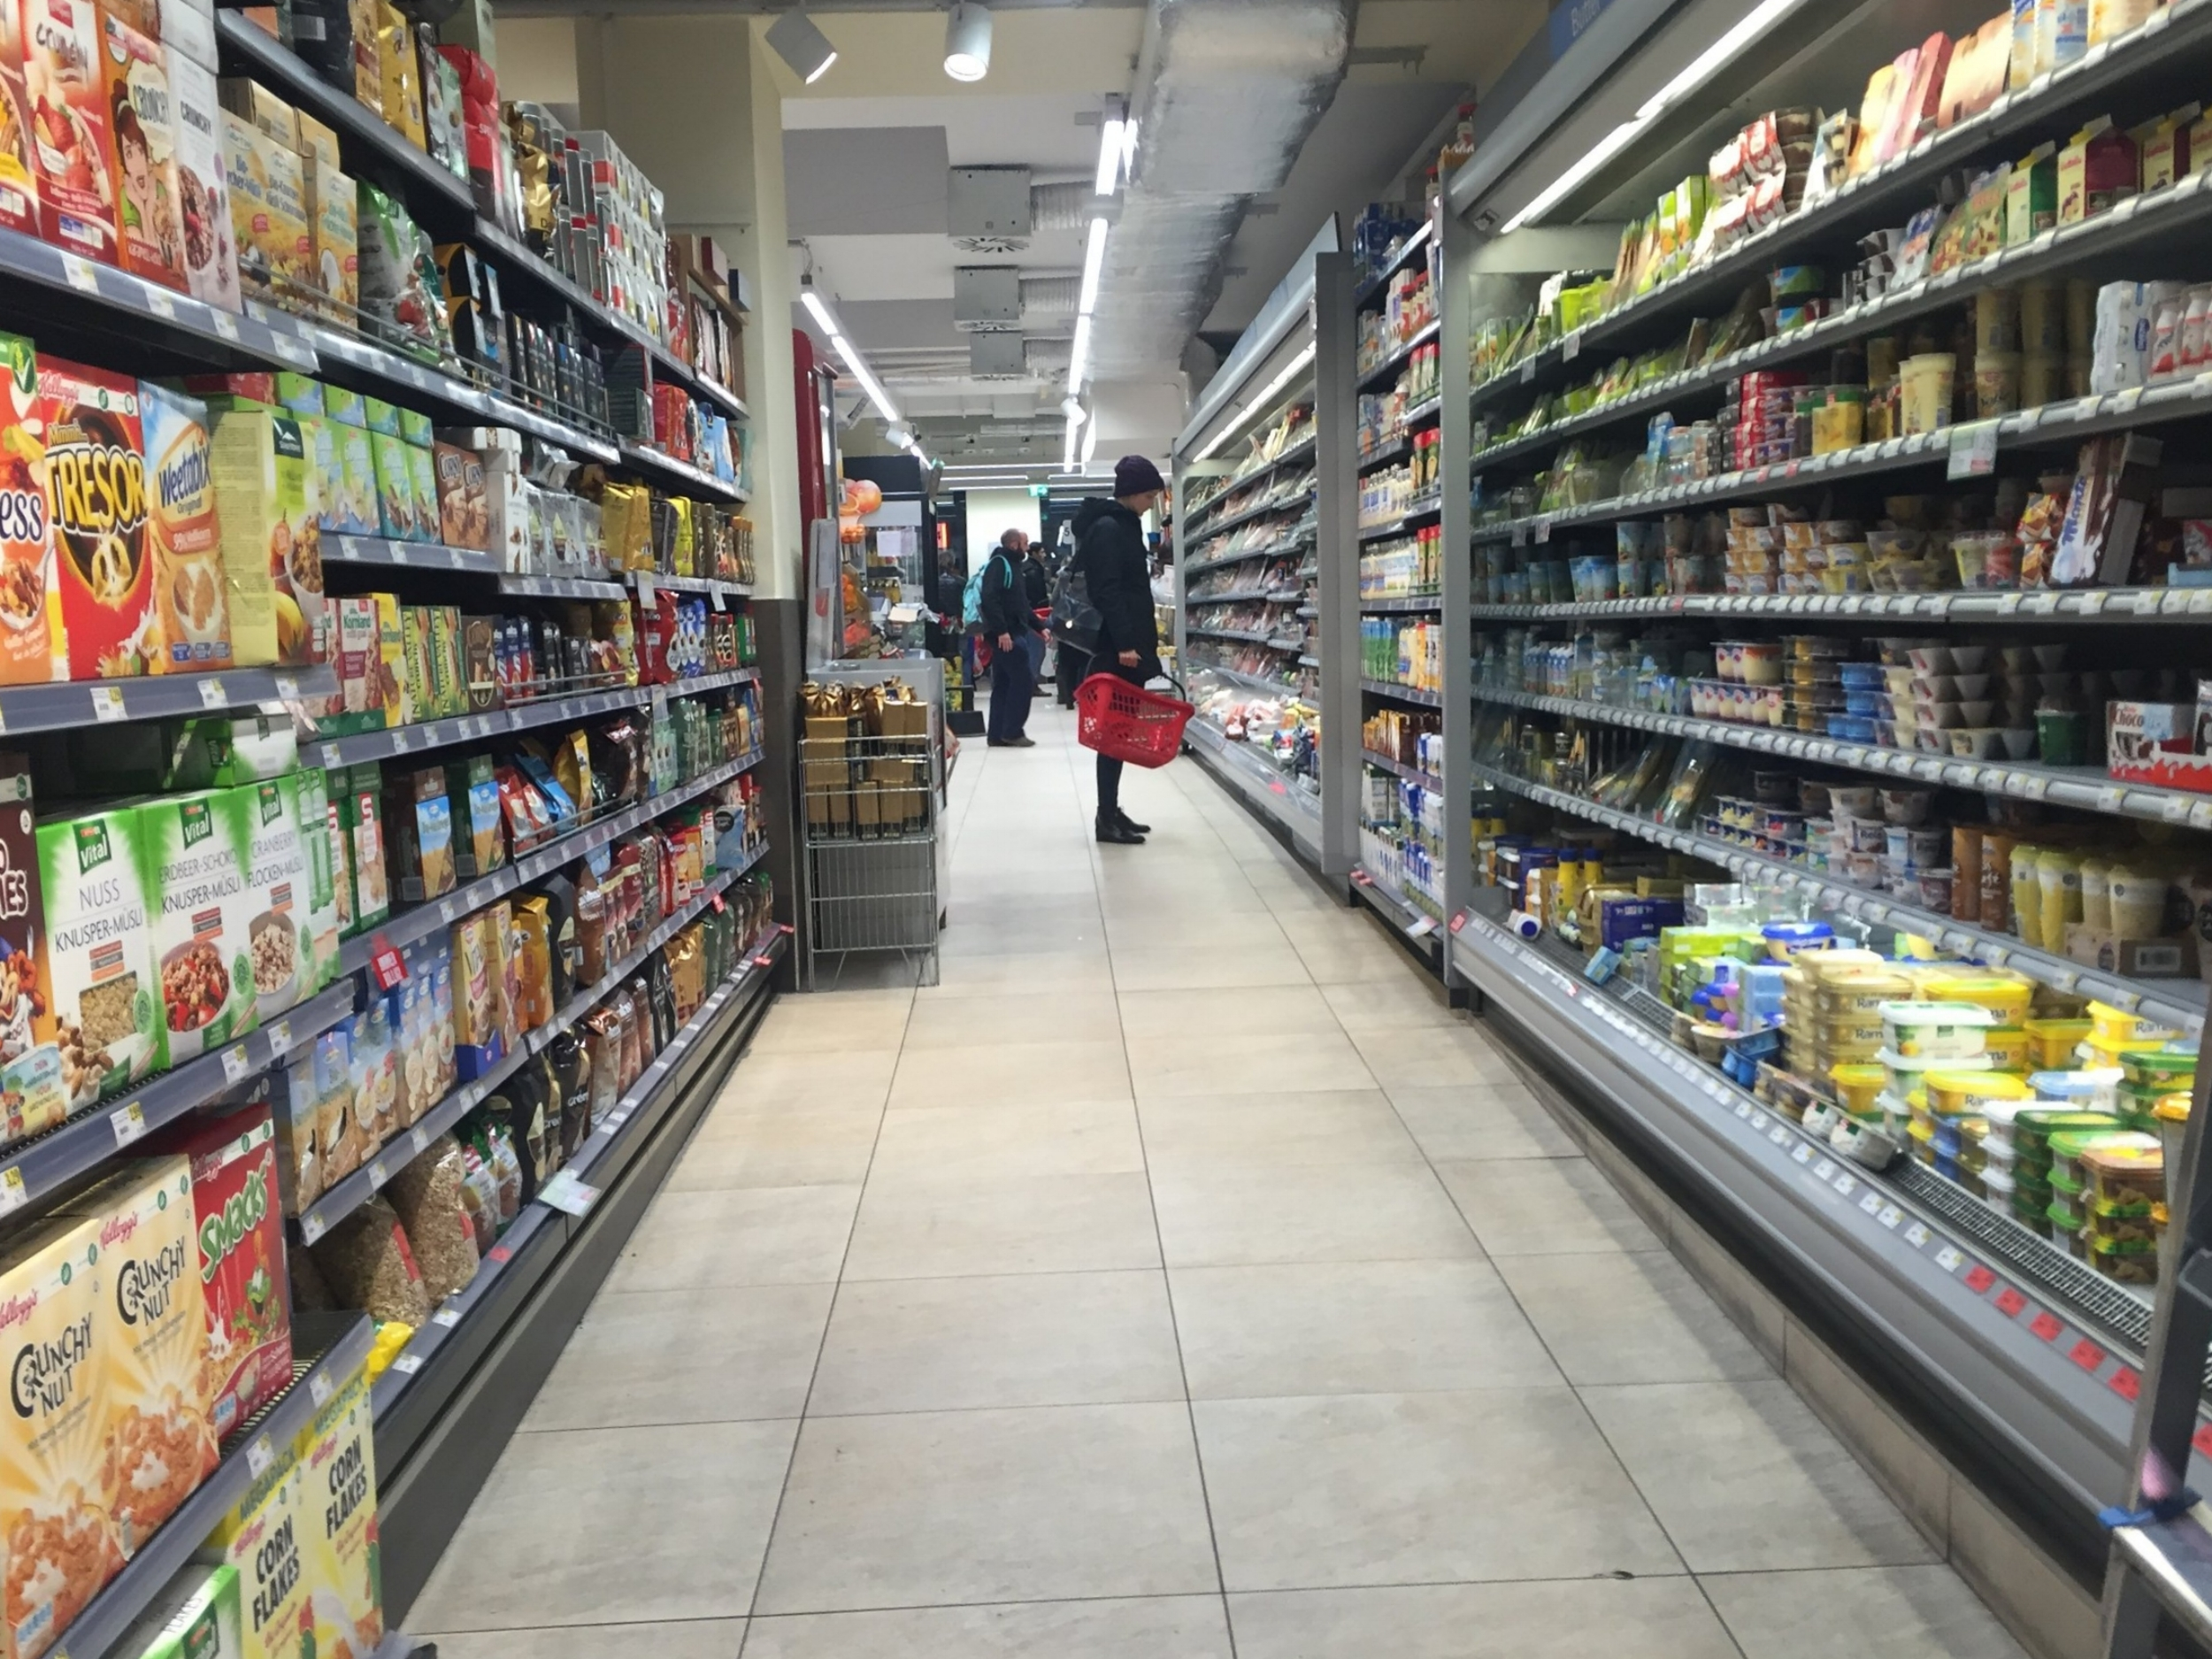 Copy of Supermarket - Berlin, Germany